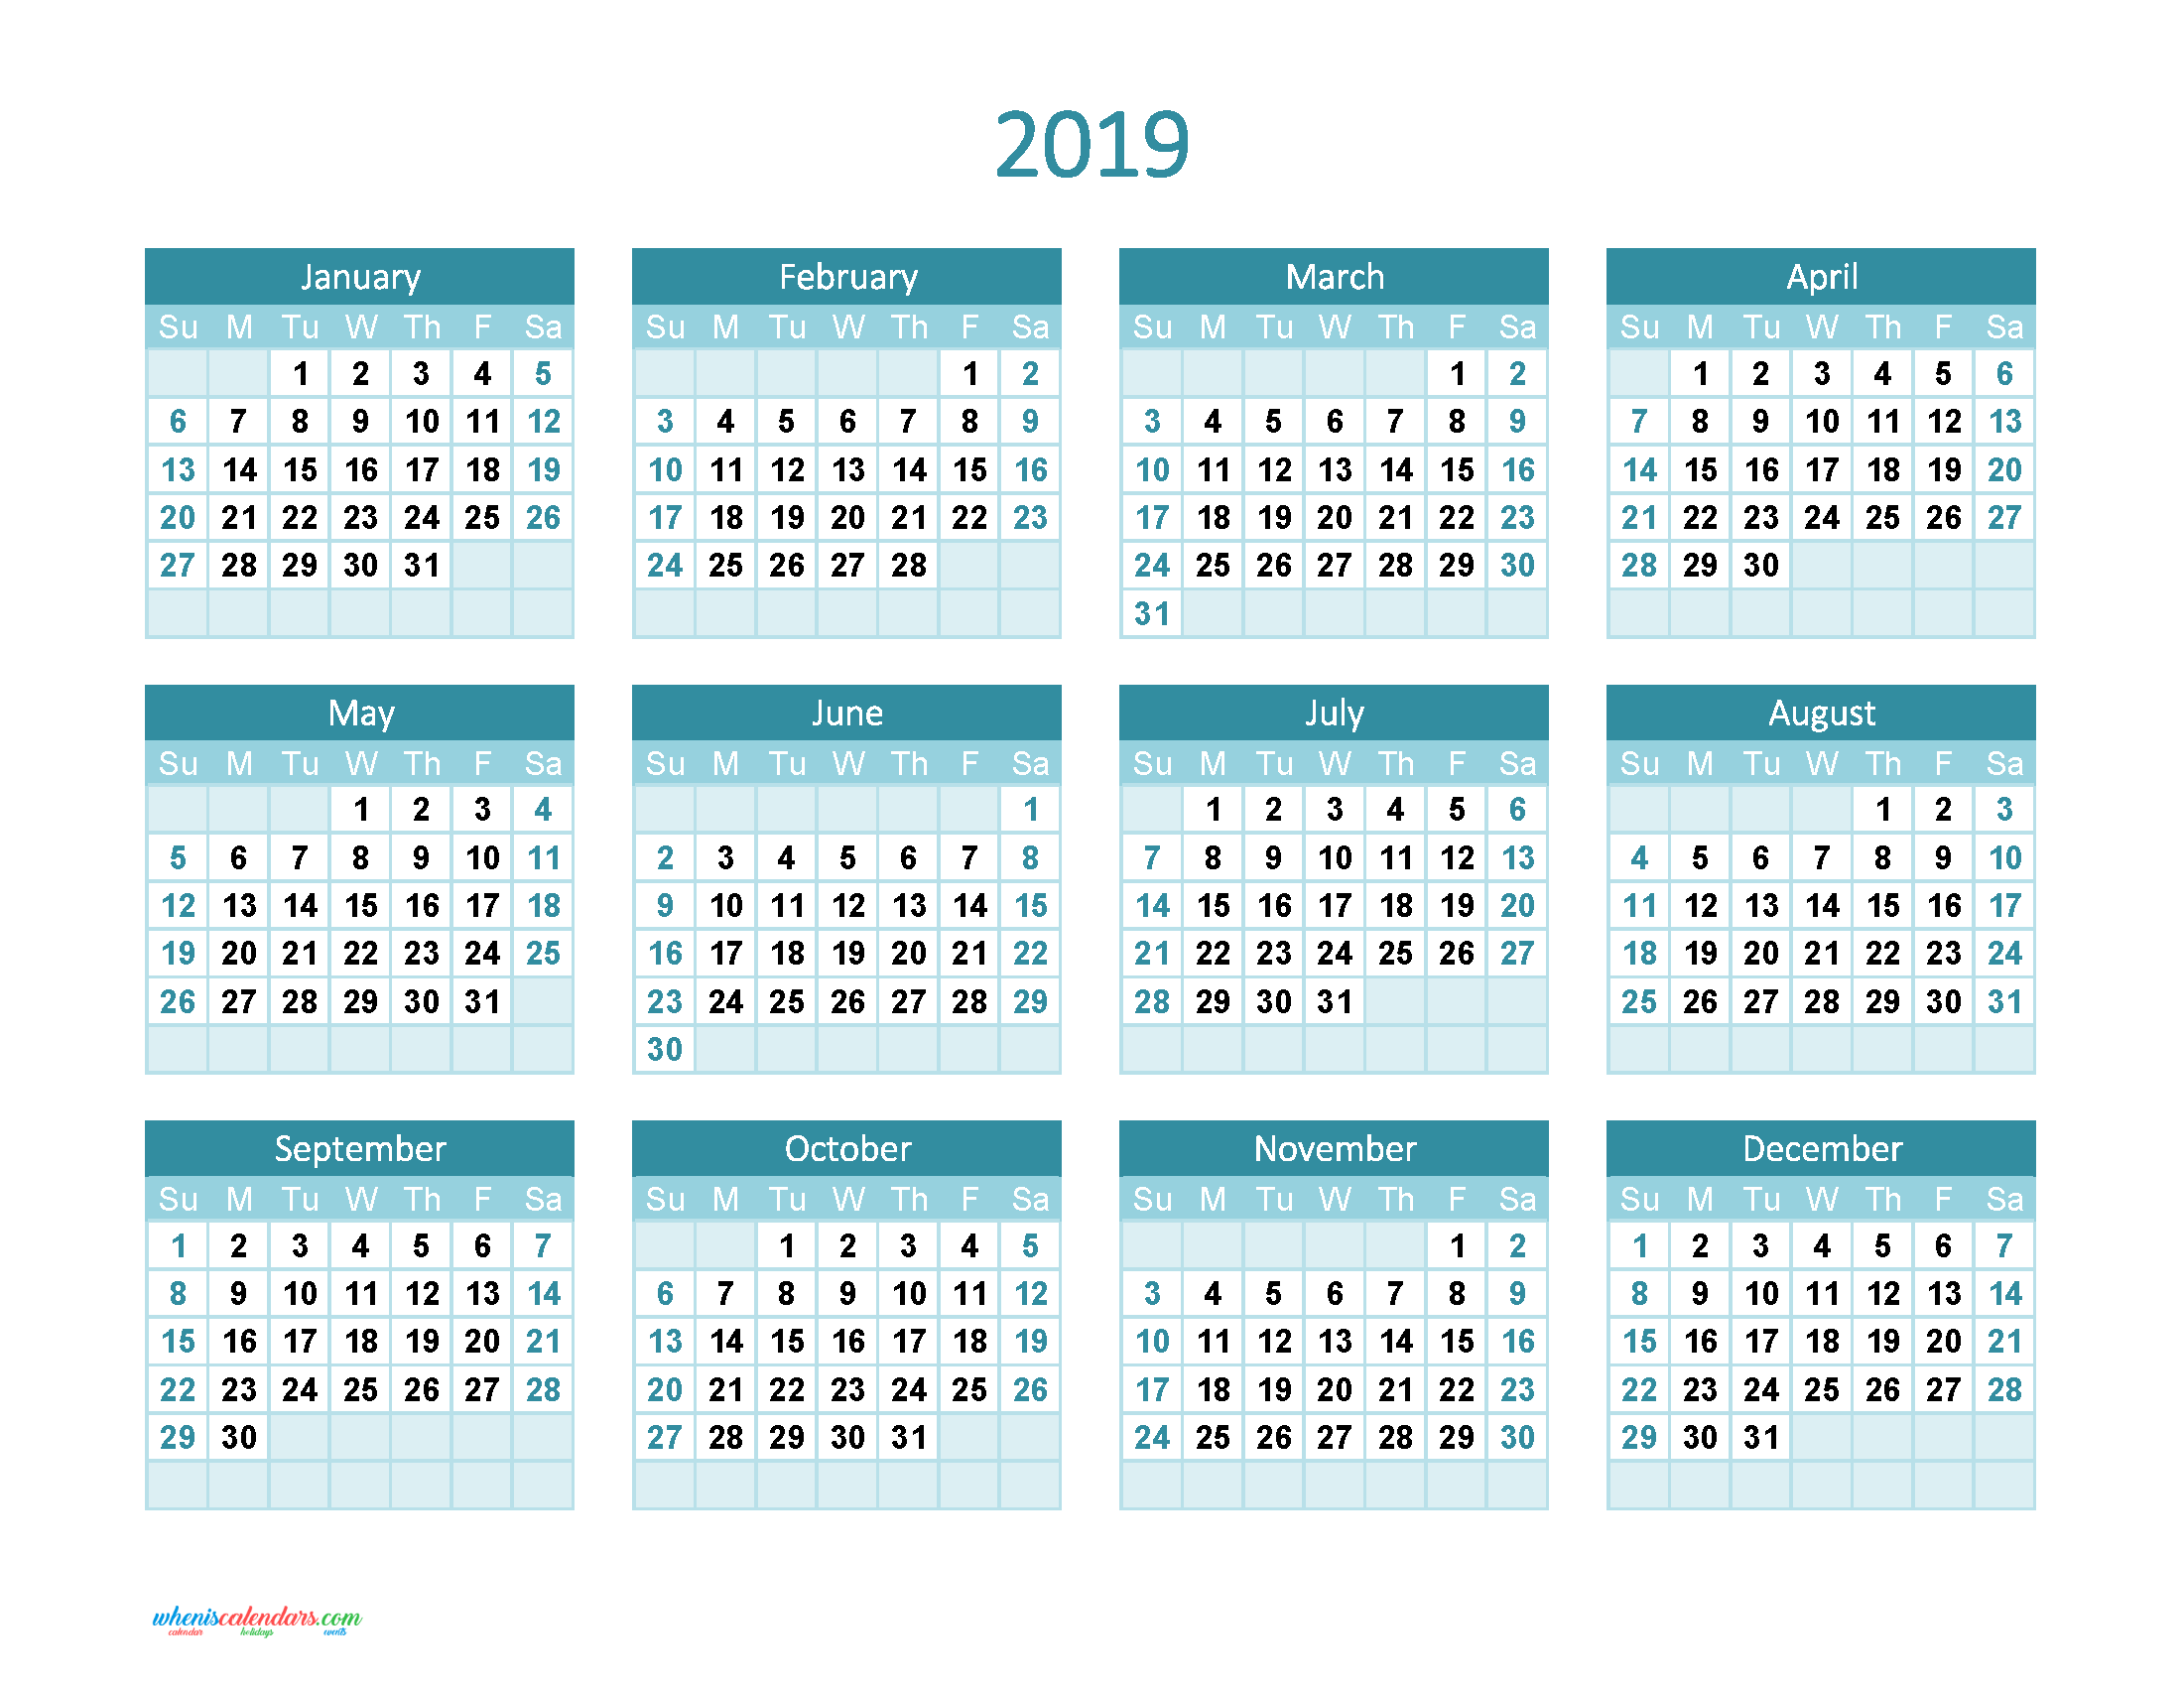 2019 Whole Year Calendar With Yearly Printable Full Theme